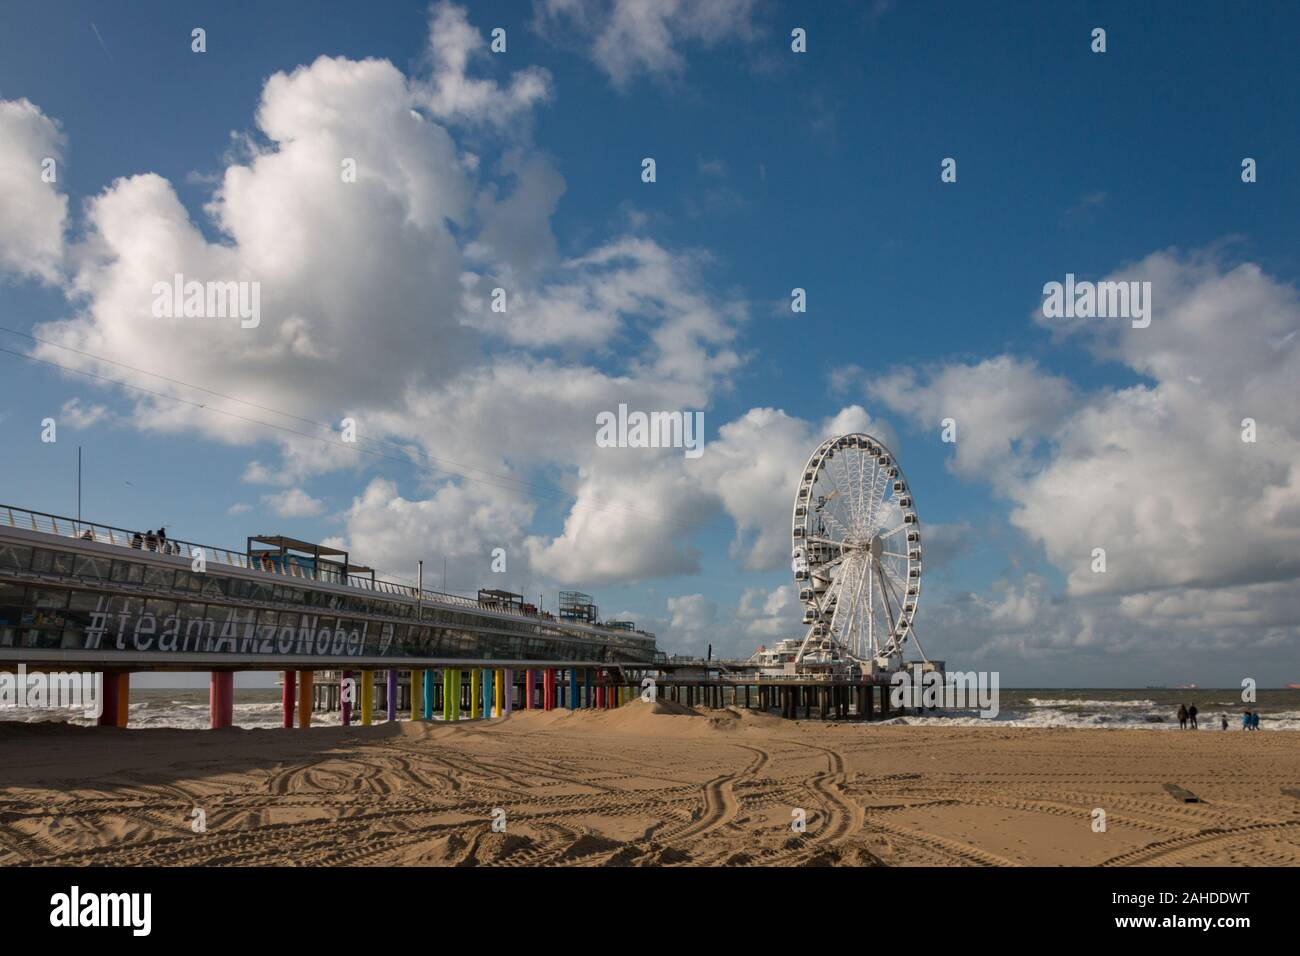 Scheveningen, the Netherlands - October 3, 2017: Pier of Scheveningen with ferris wheel and bungee tower seen from the right side Stock Photo